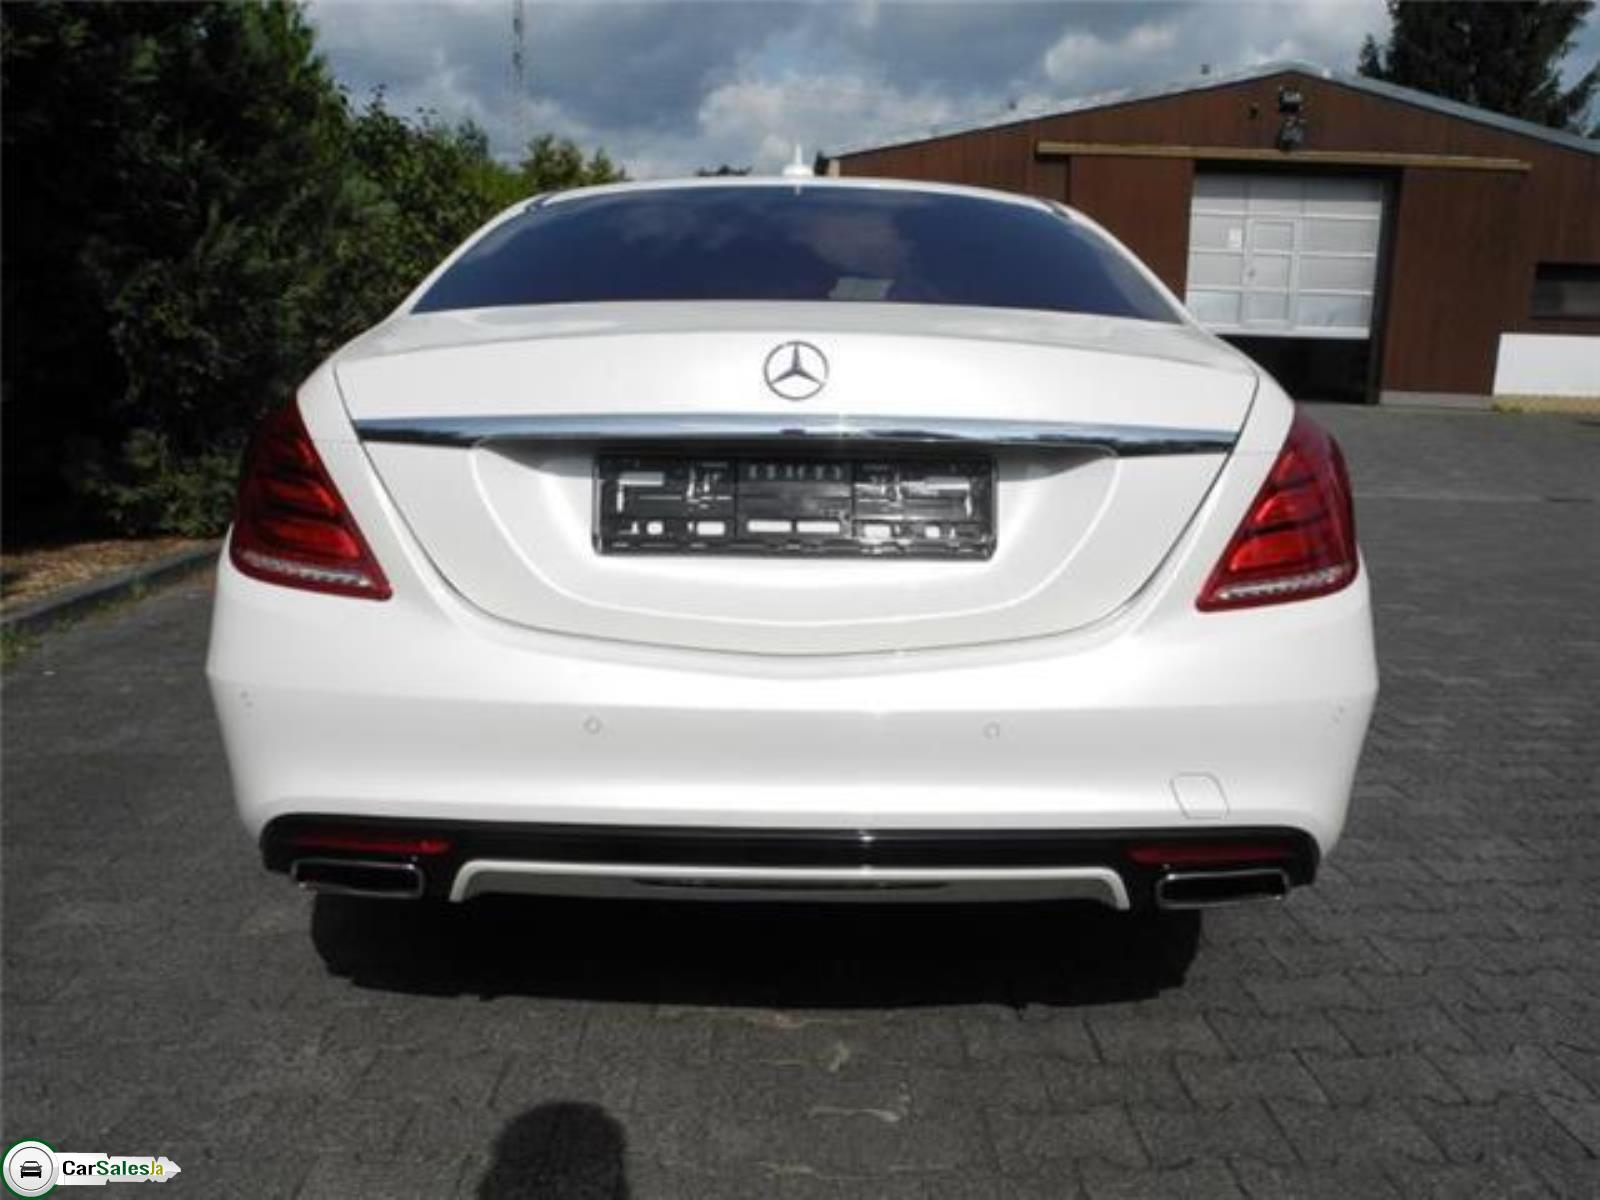 Cars for sale in Jamaica, Mercedes-Benz S500 Car for sale in Jamaica